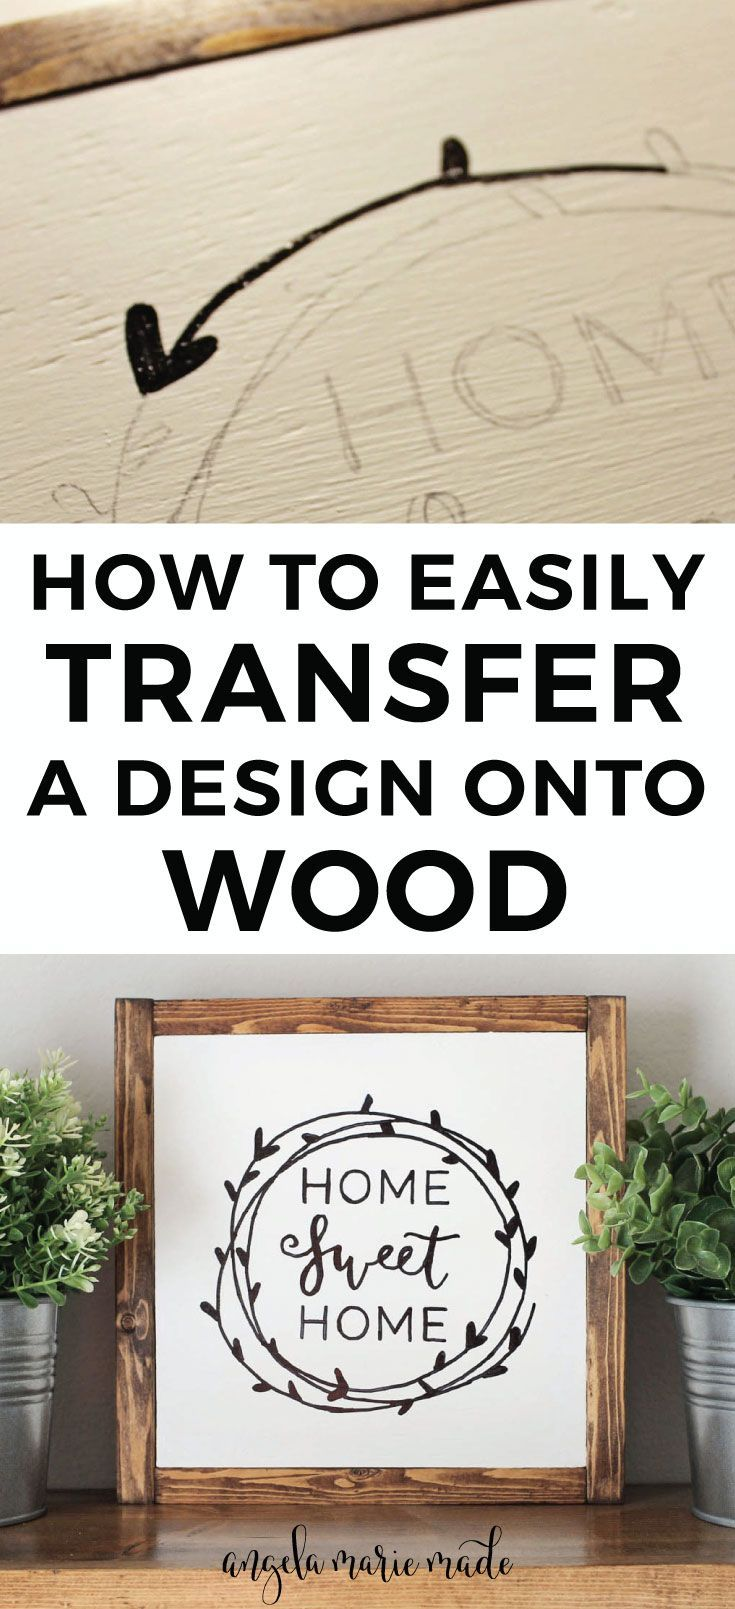 How To Easily Transfer A Design Onto Wood Diy Wood Signs